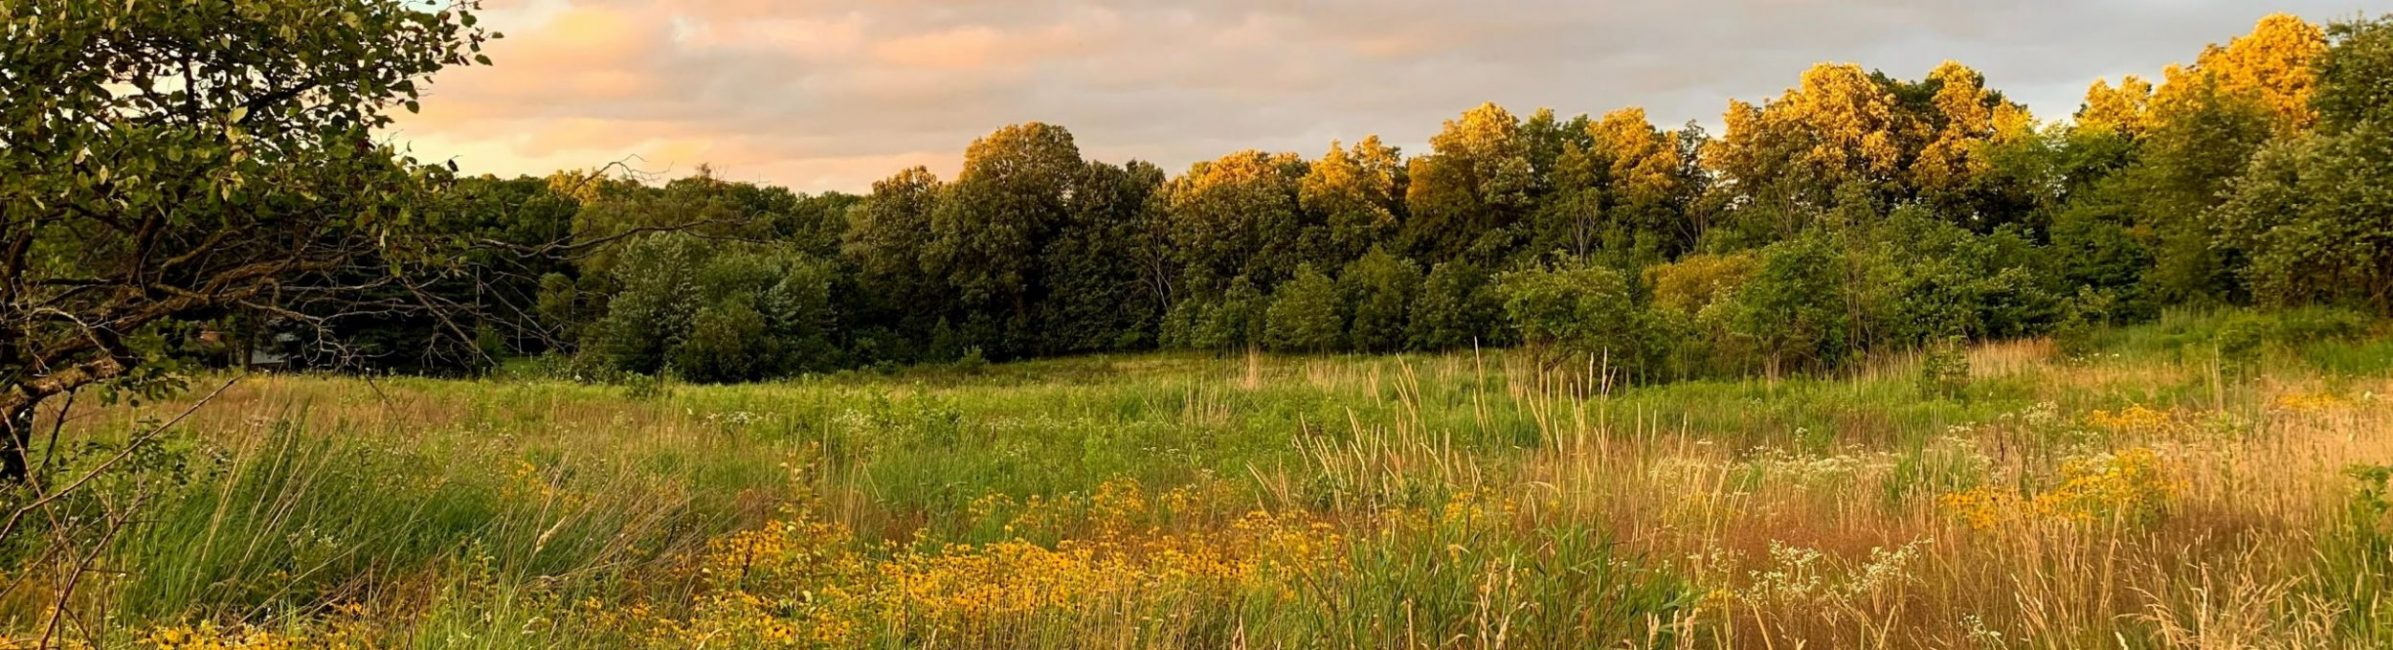 Friends of Greenview and Pioneer Woods Nature Areas